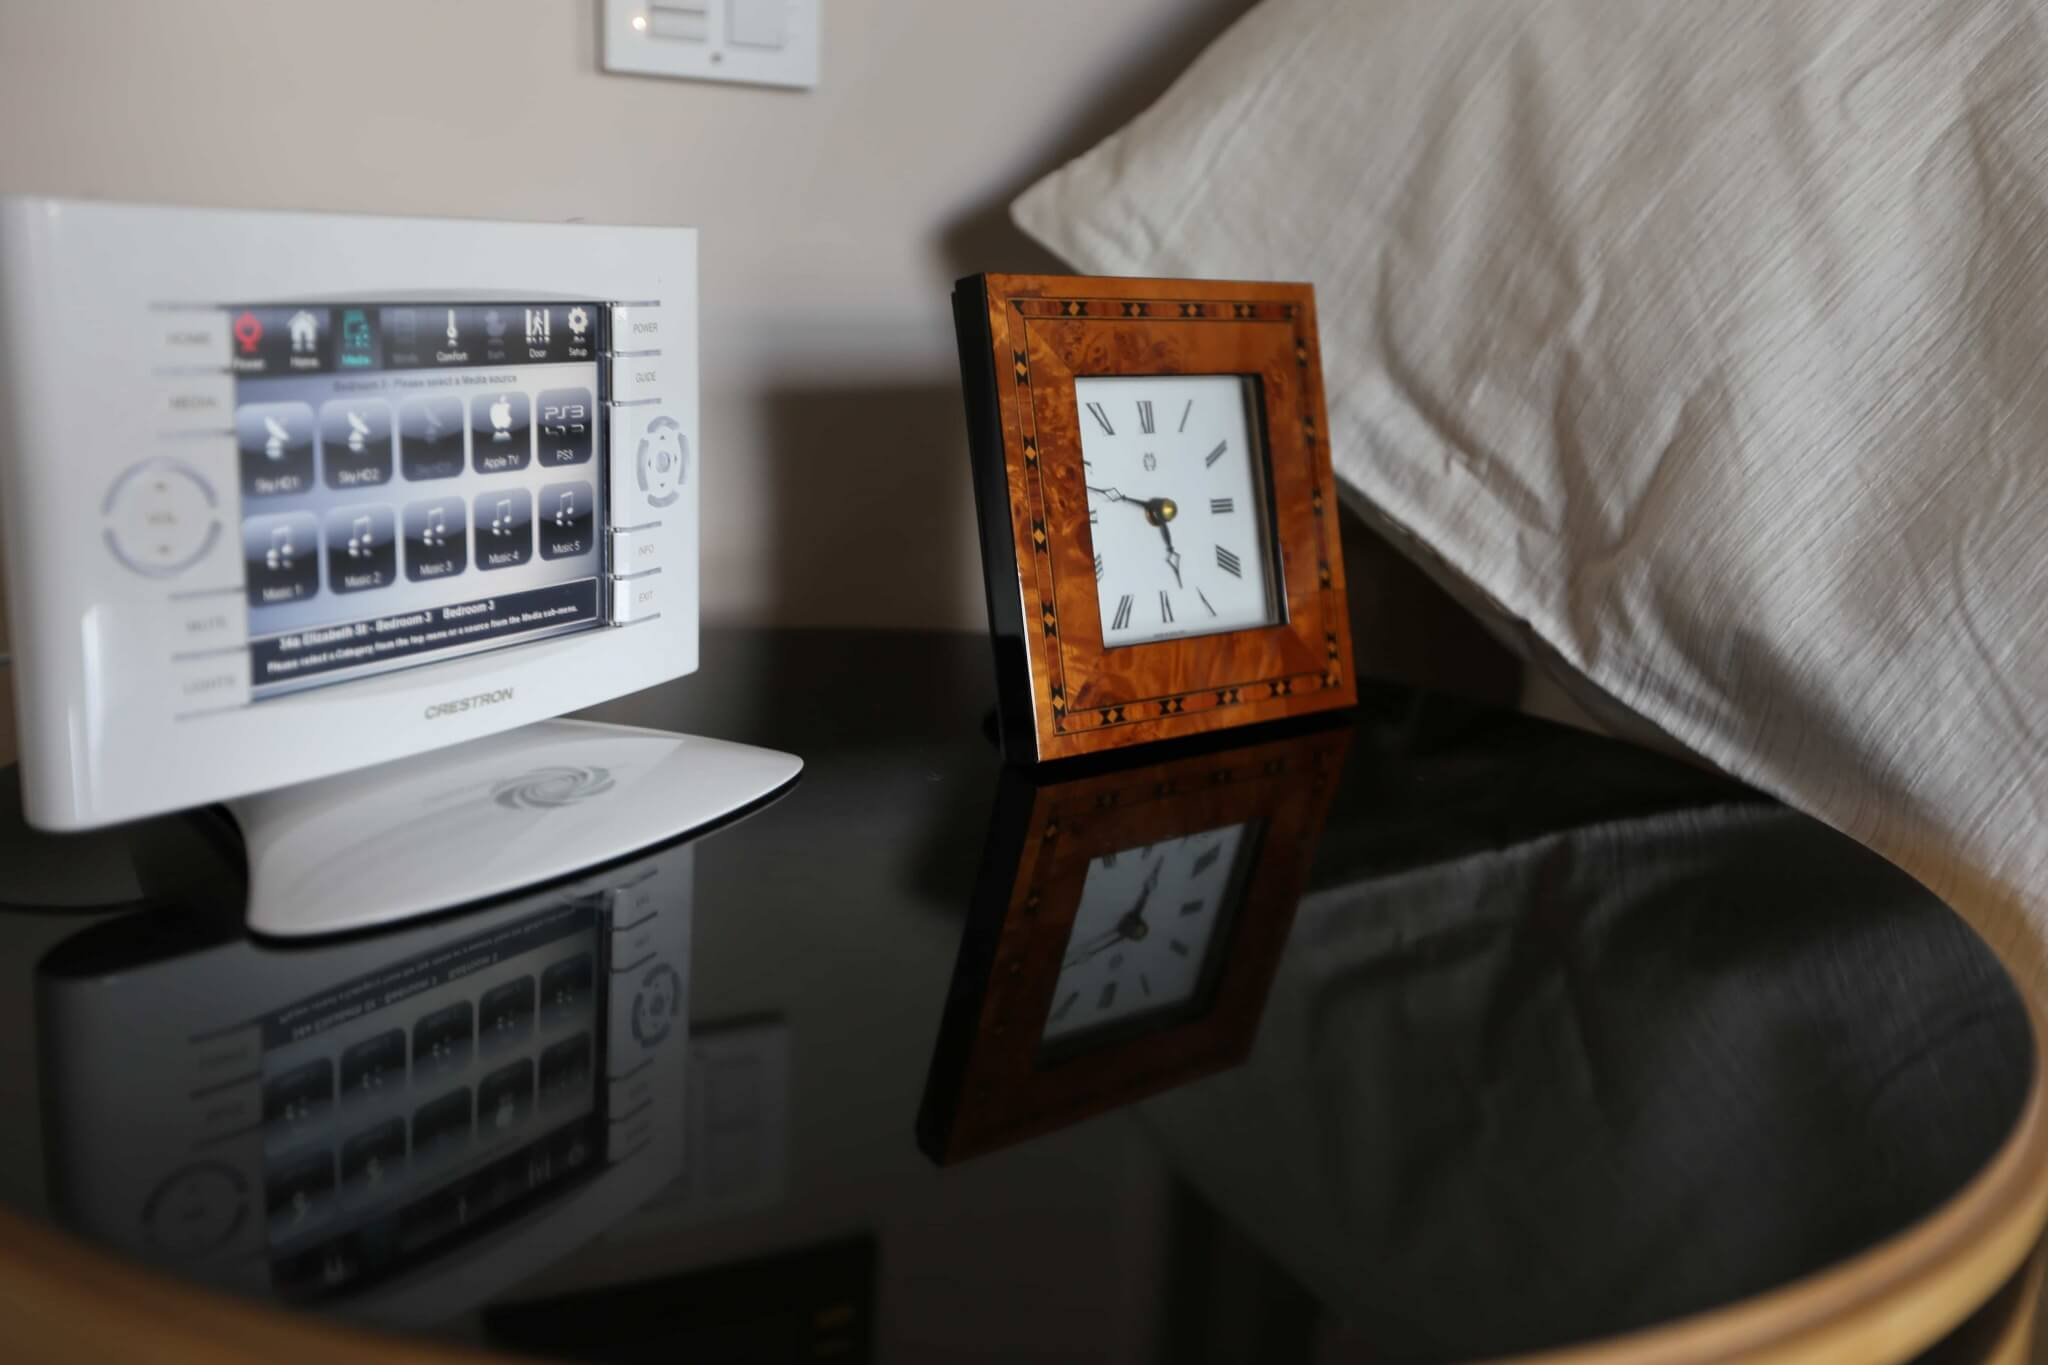 Crestron Touchpanel on Bedside Table